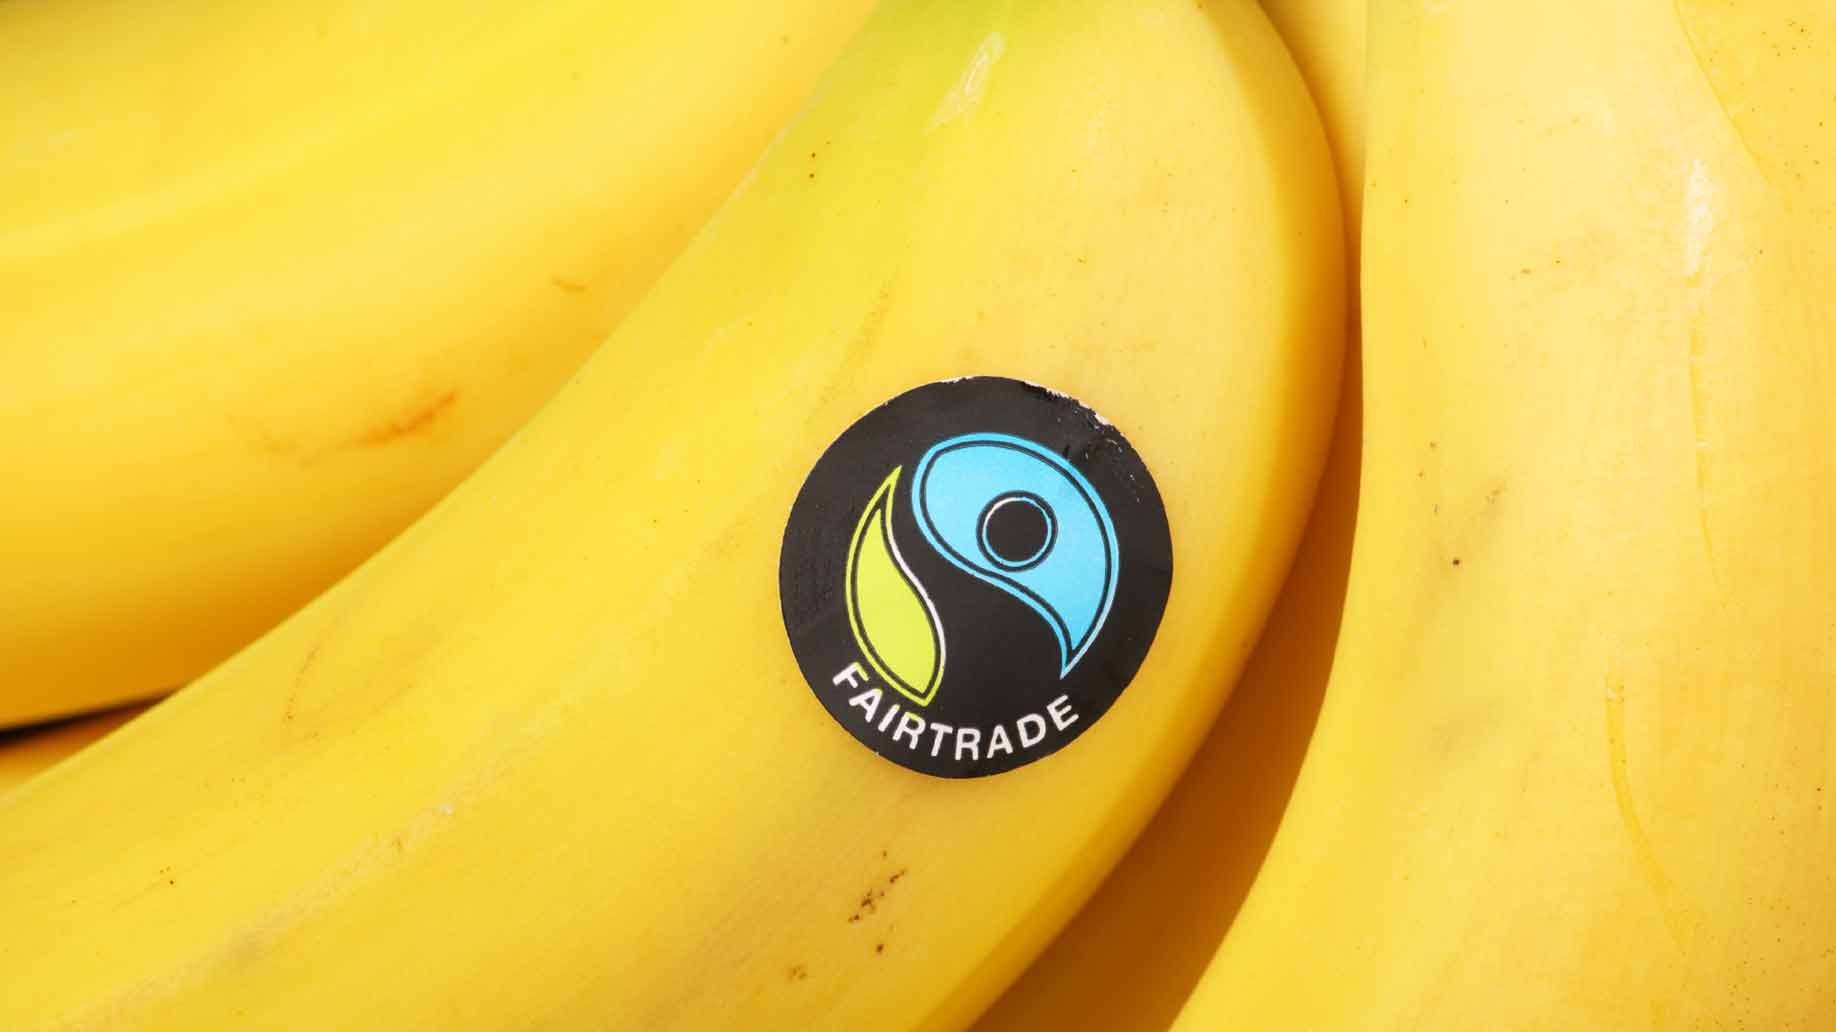 fair trade certified bananas